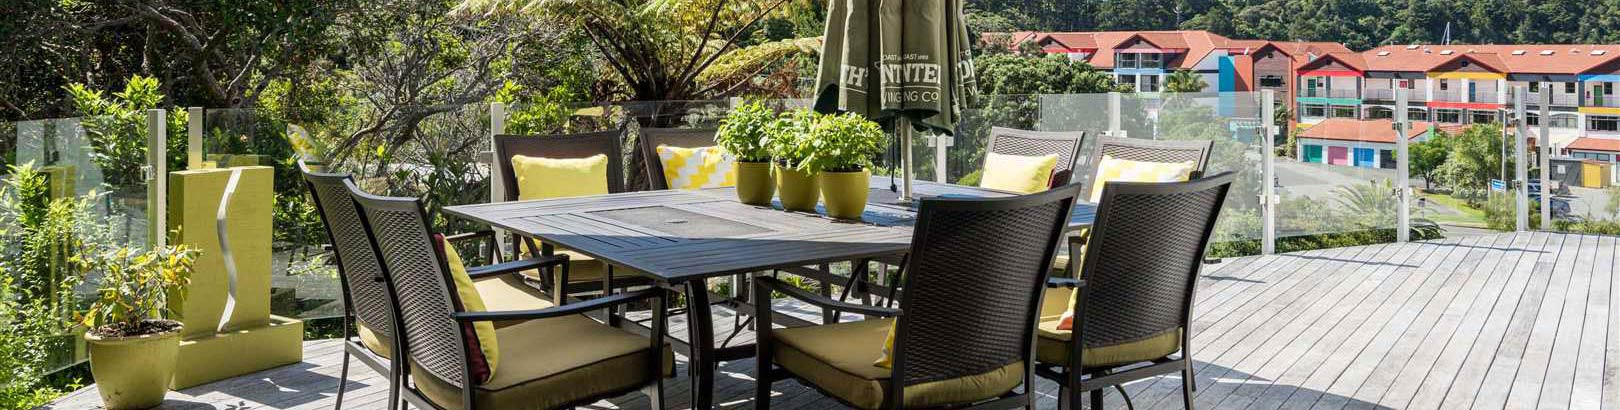 A great outdoor space to relax in